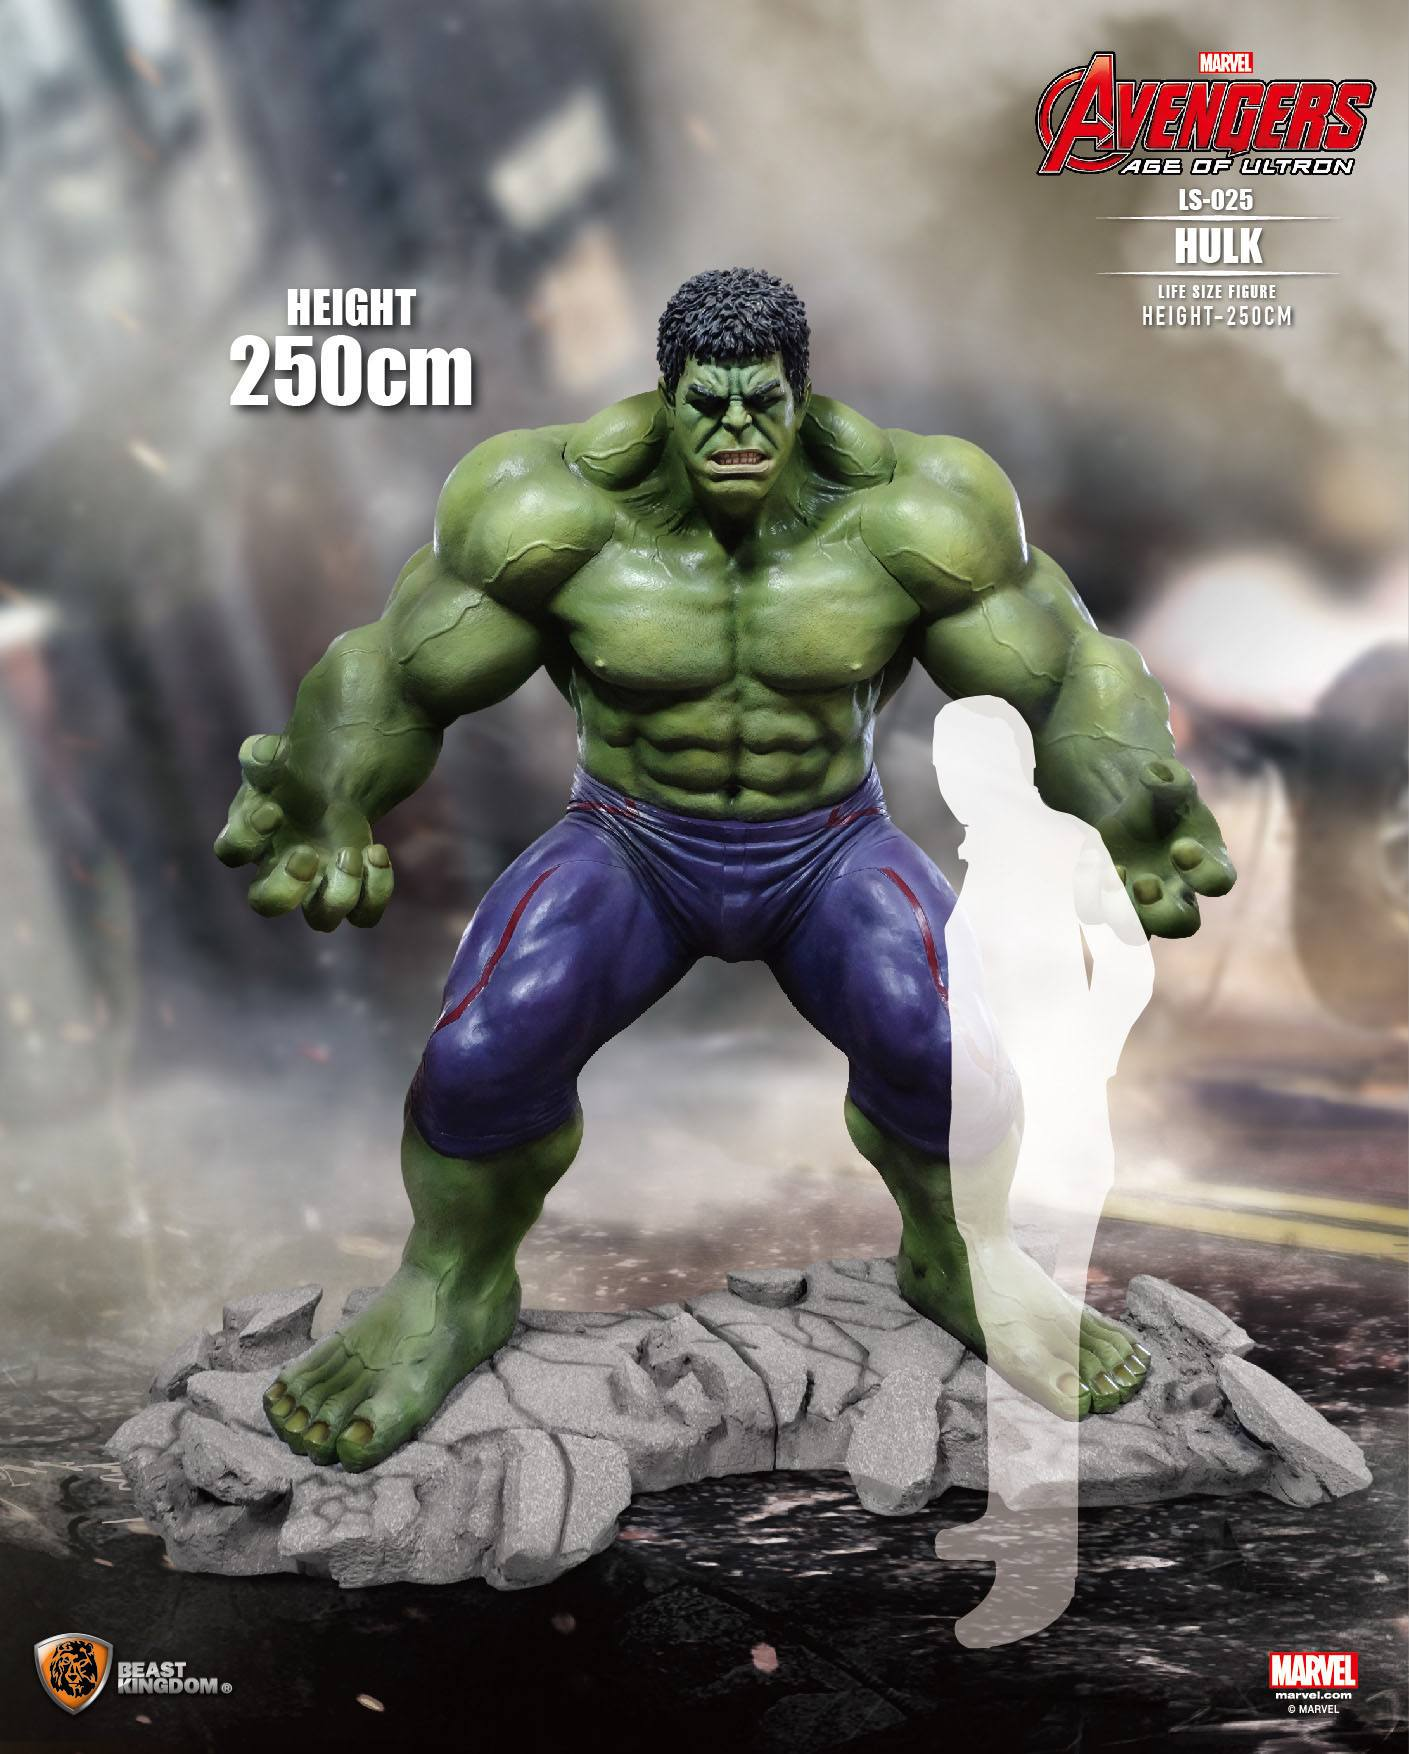 the incredible hulk giant life size statue on demand items sds cool stuff